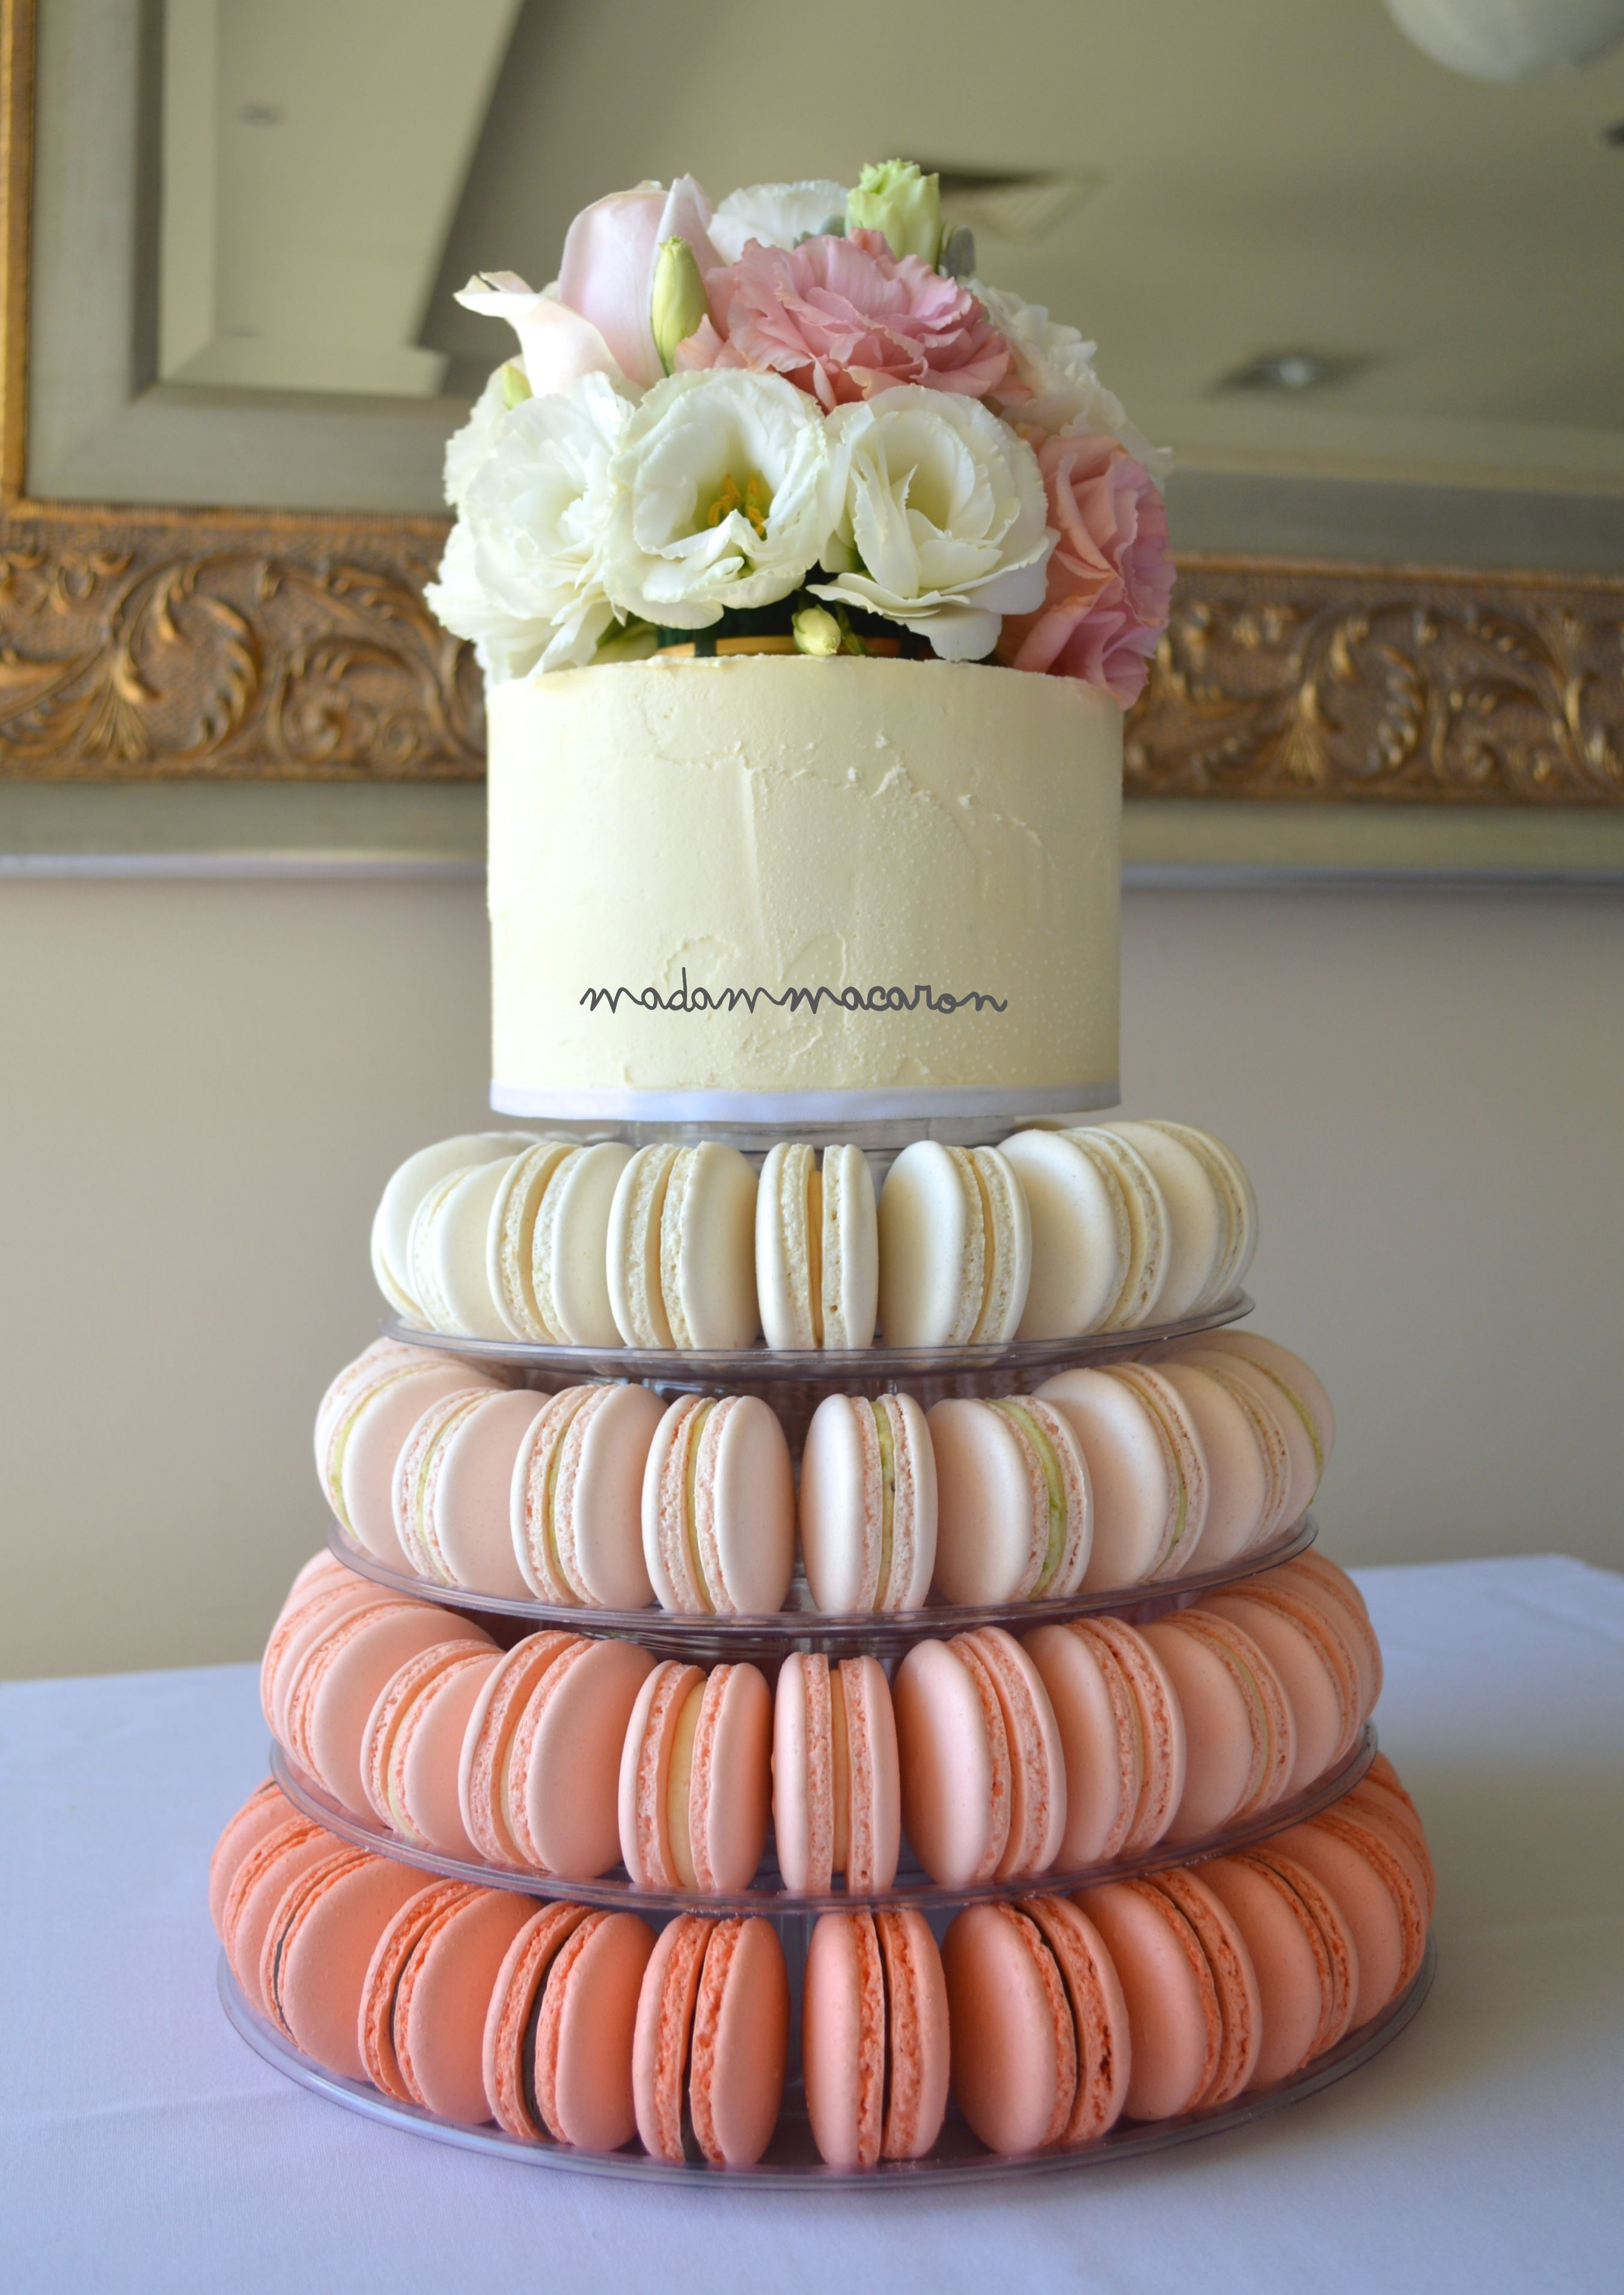 Peach Ombre Macaron Tower Buttercream Cake On Top Finished With Fresh Flowers Macaroon Wedding Cakes Wedding Macarons Macaroon Cake